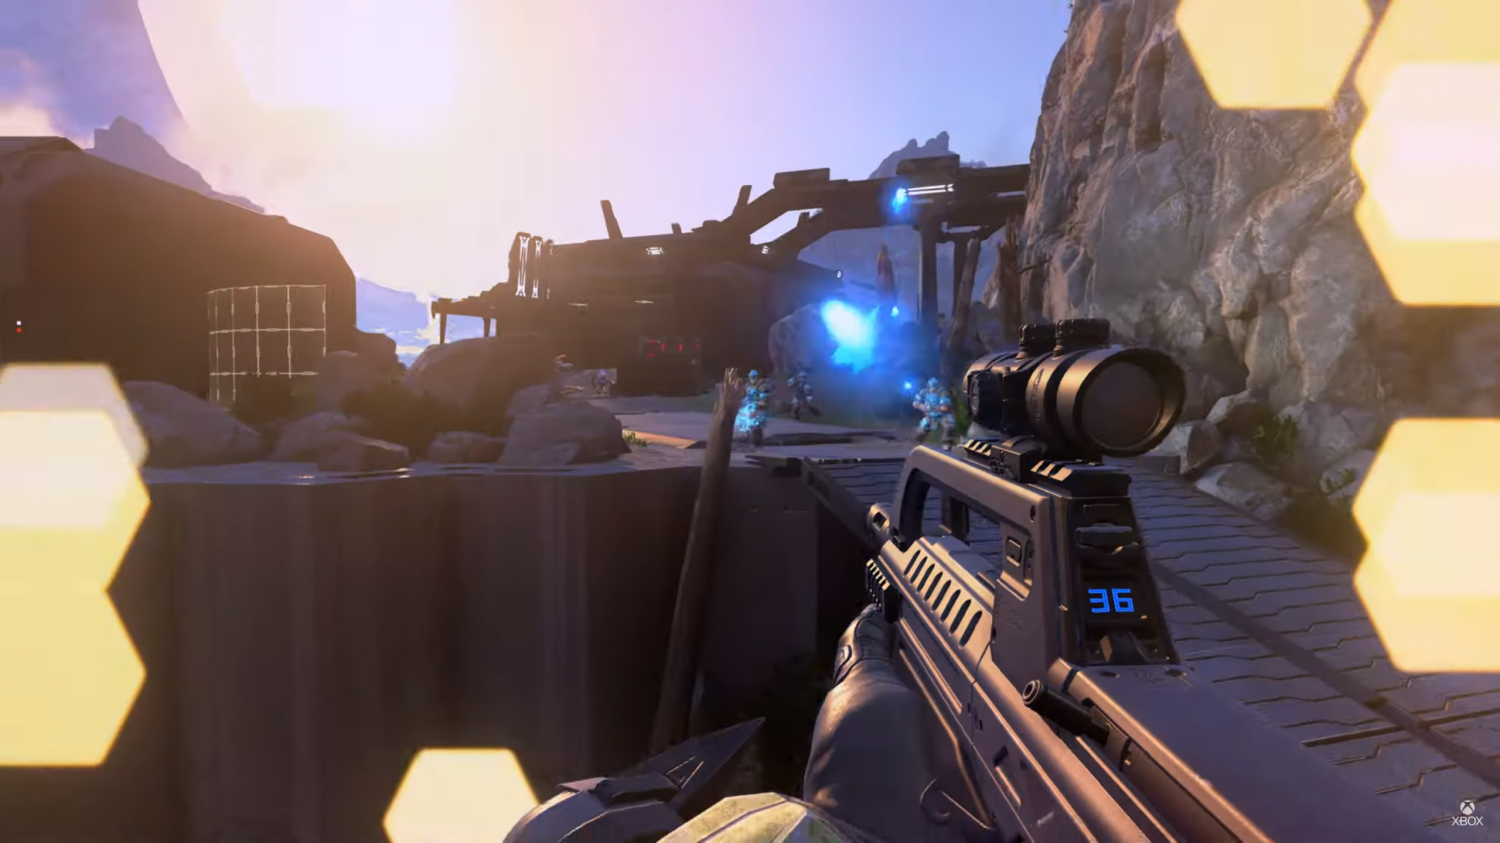 73991_4_halo-infinite-new-weapons-guns-guide-grappling-hook-dmr-ar-more_full.png